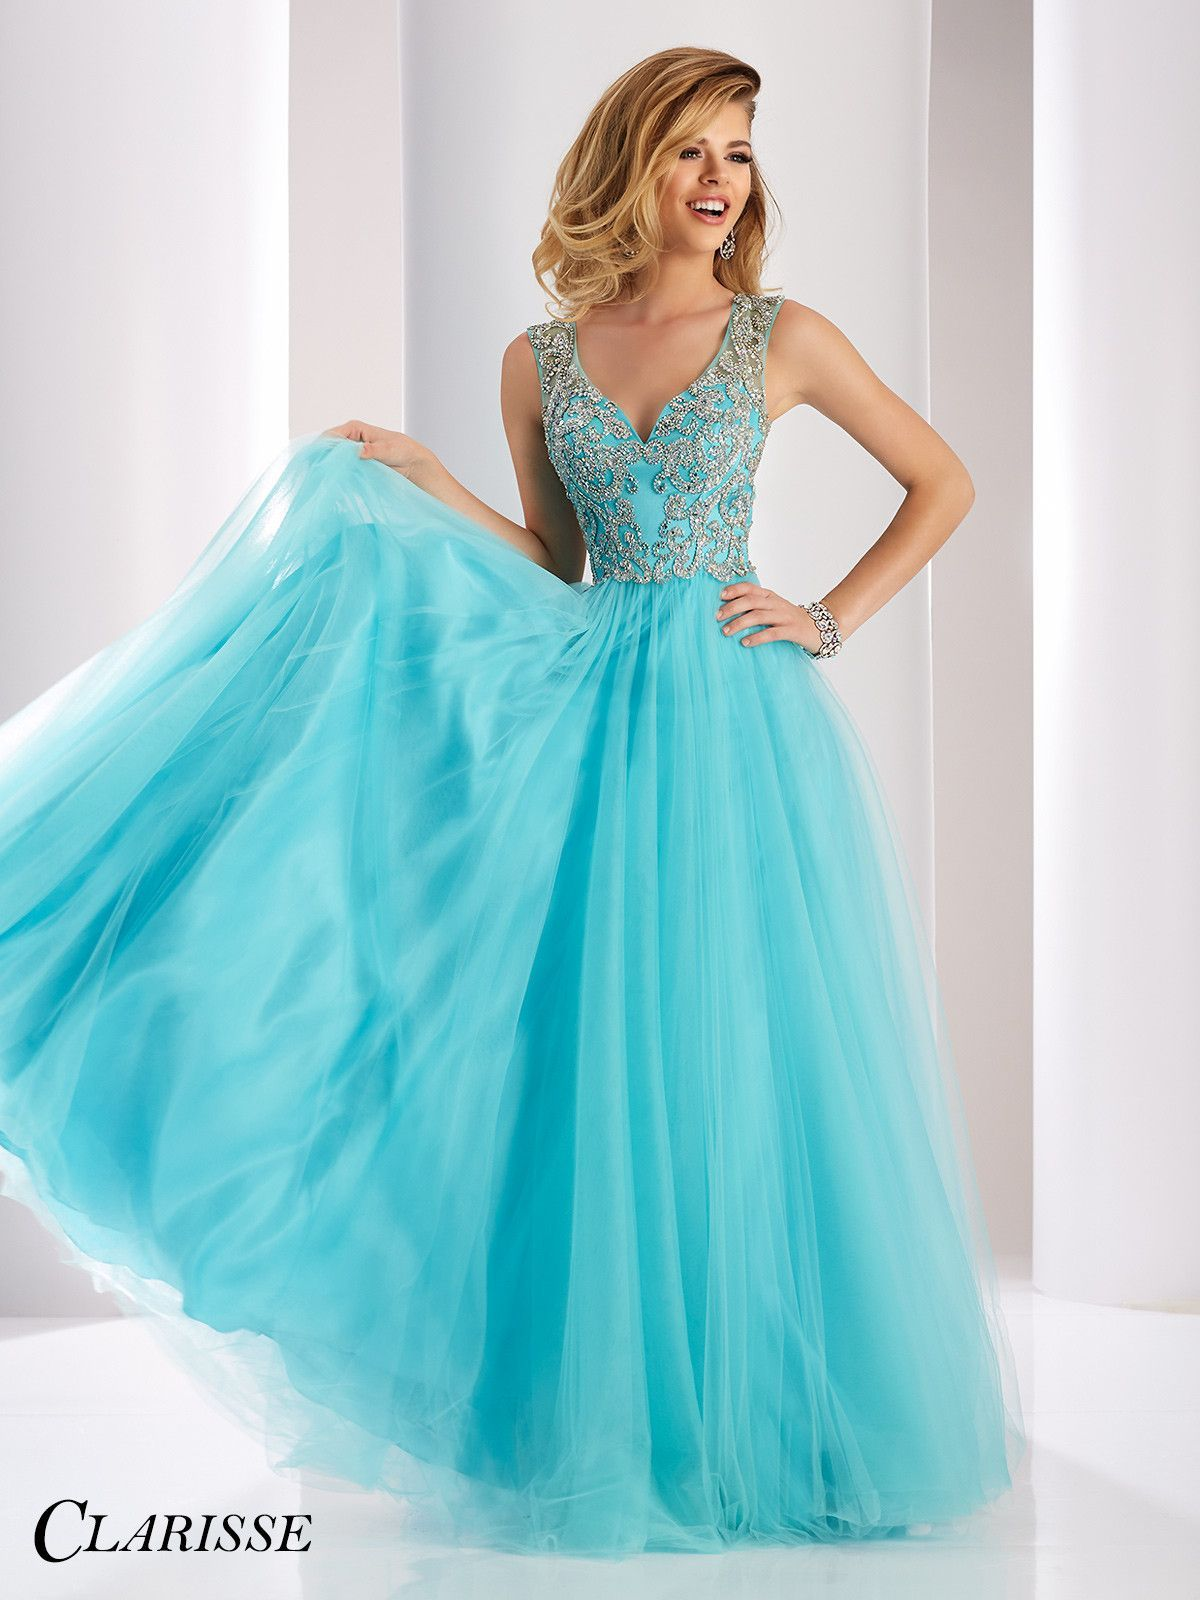 511dc7f91c18c Clarisse Prom 3019 Turquoise Ball Gown Prom Dress | Prom, Ball gown ...